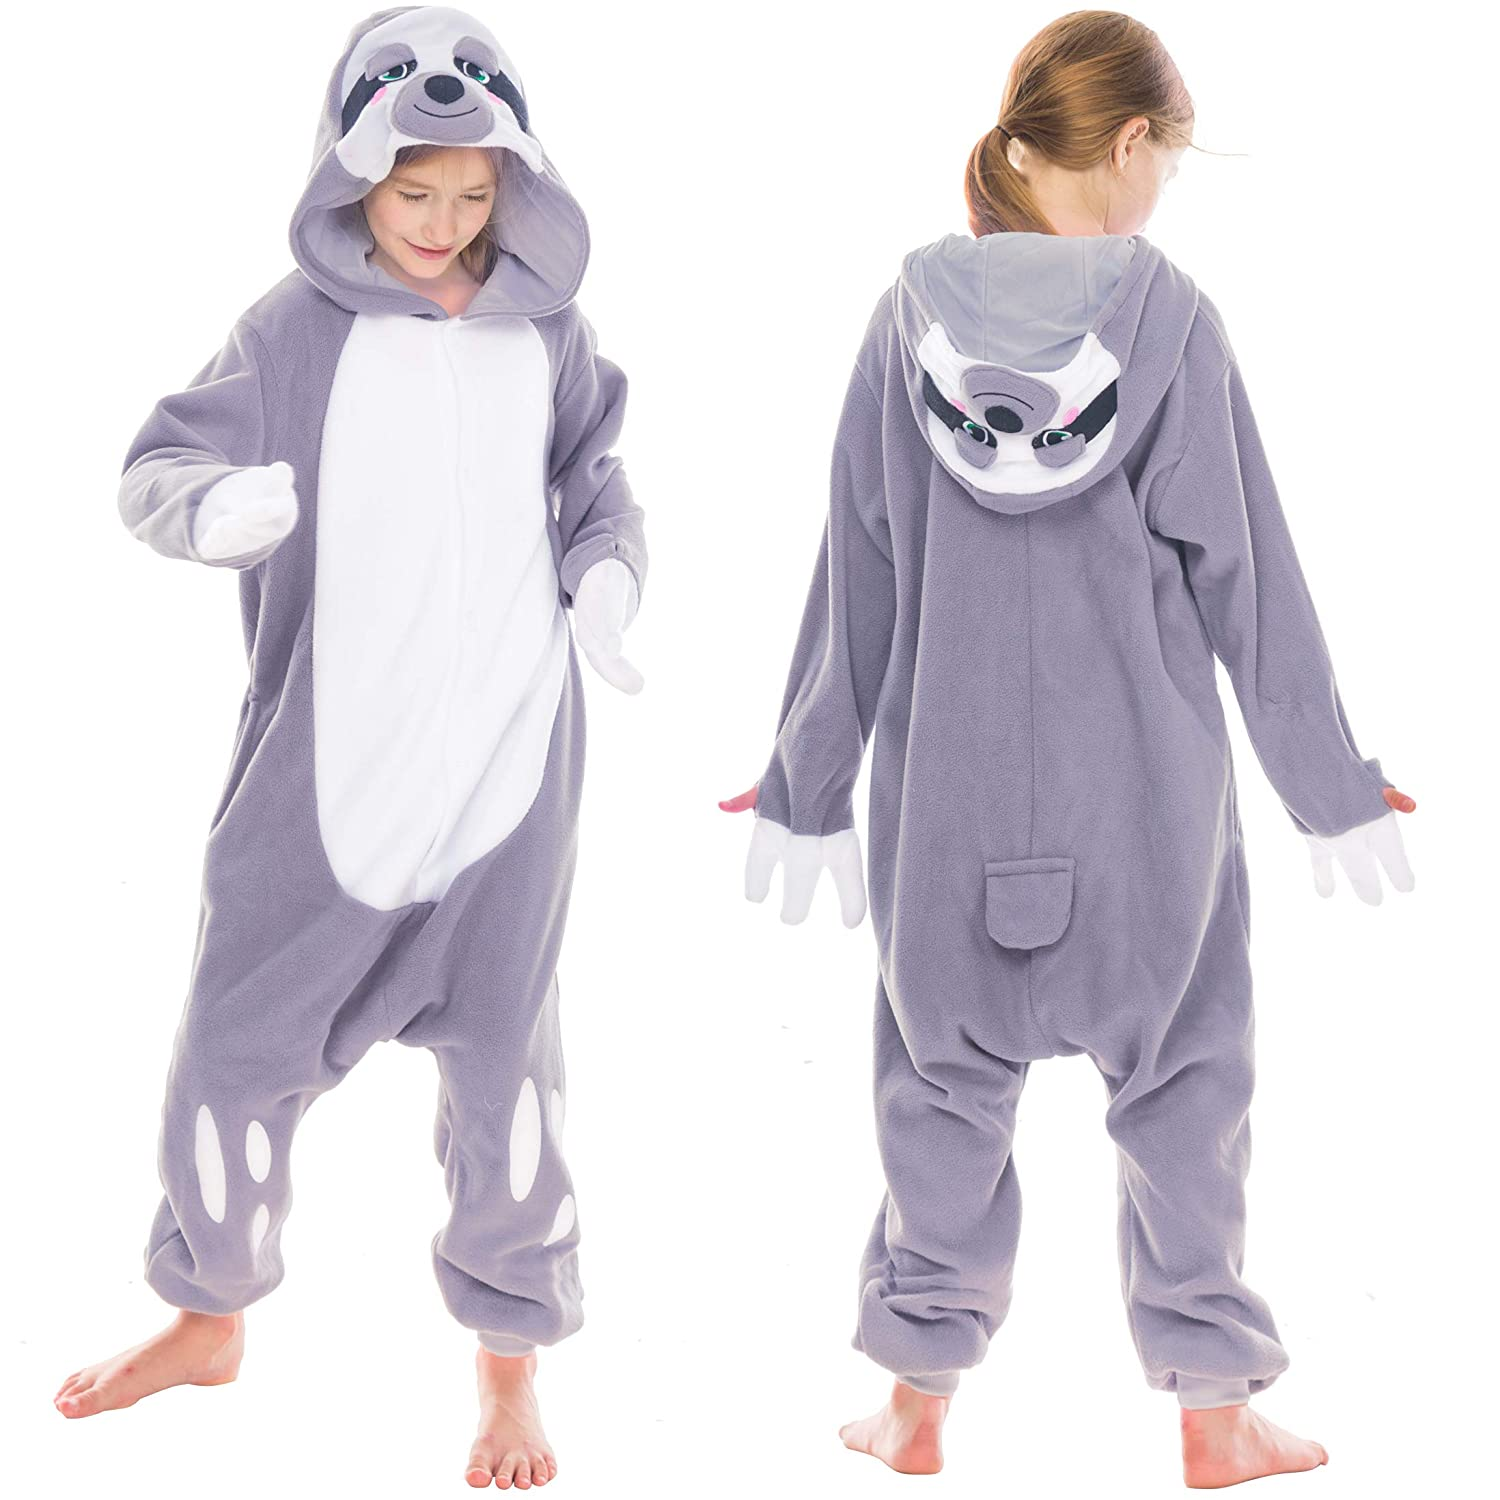 Amazon.com  Spooktacular Creations Unisex Child Pajama Plush Onesie One  Piece Sloth Animal Costume  Clothing 62cce7806